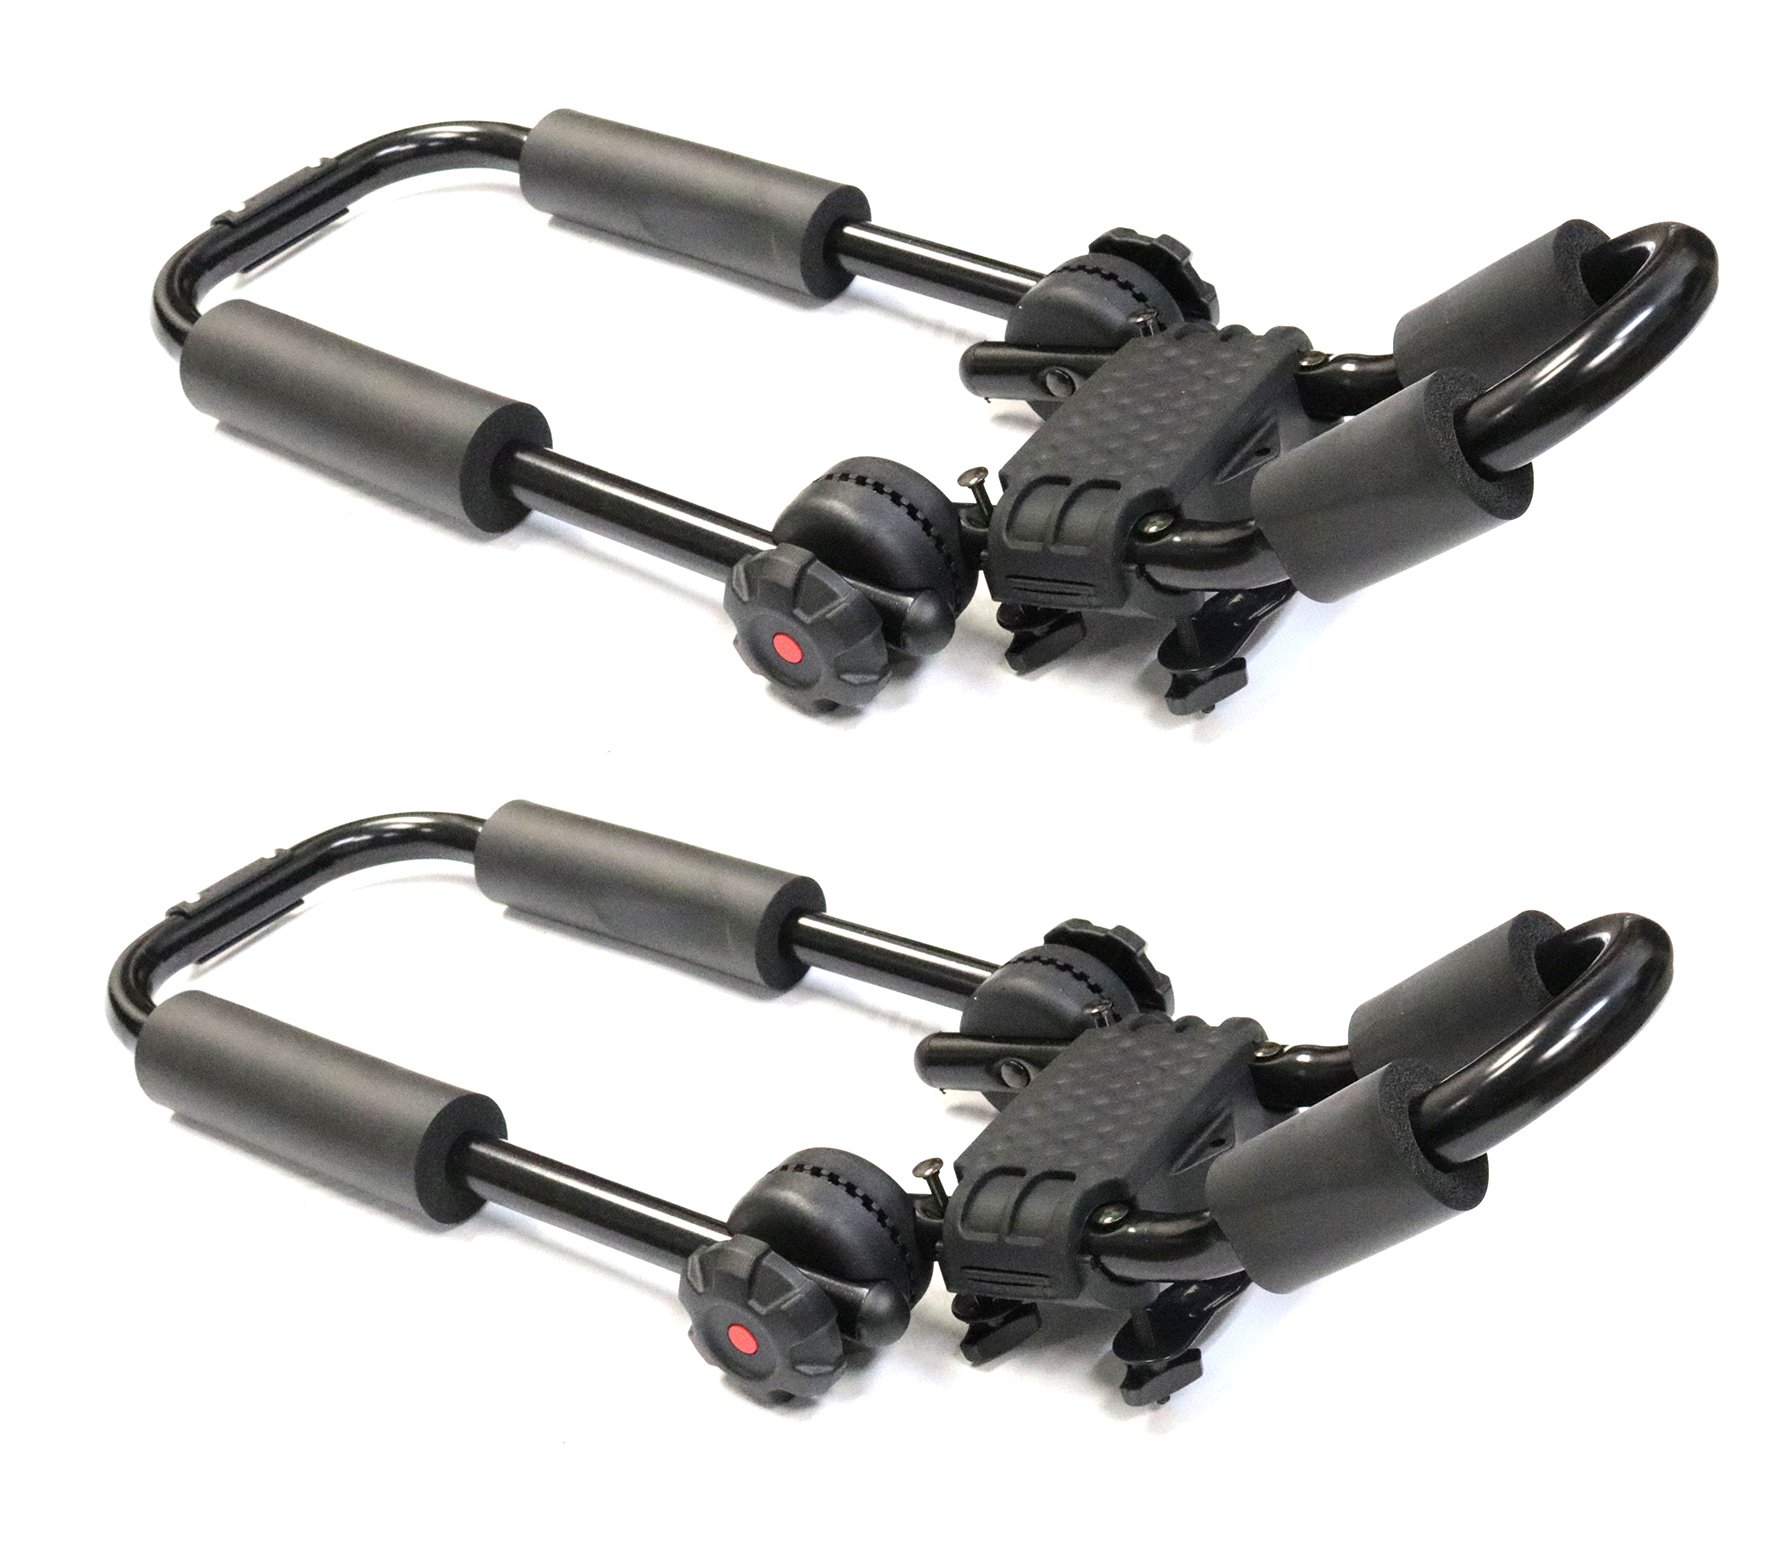 TMB Universal Dual Kayak Mounting System V2 fits most Vehicles Equipped with Cross Bars by TMB